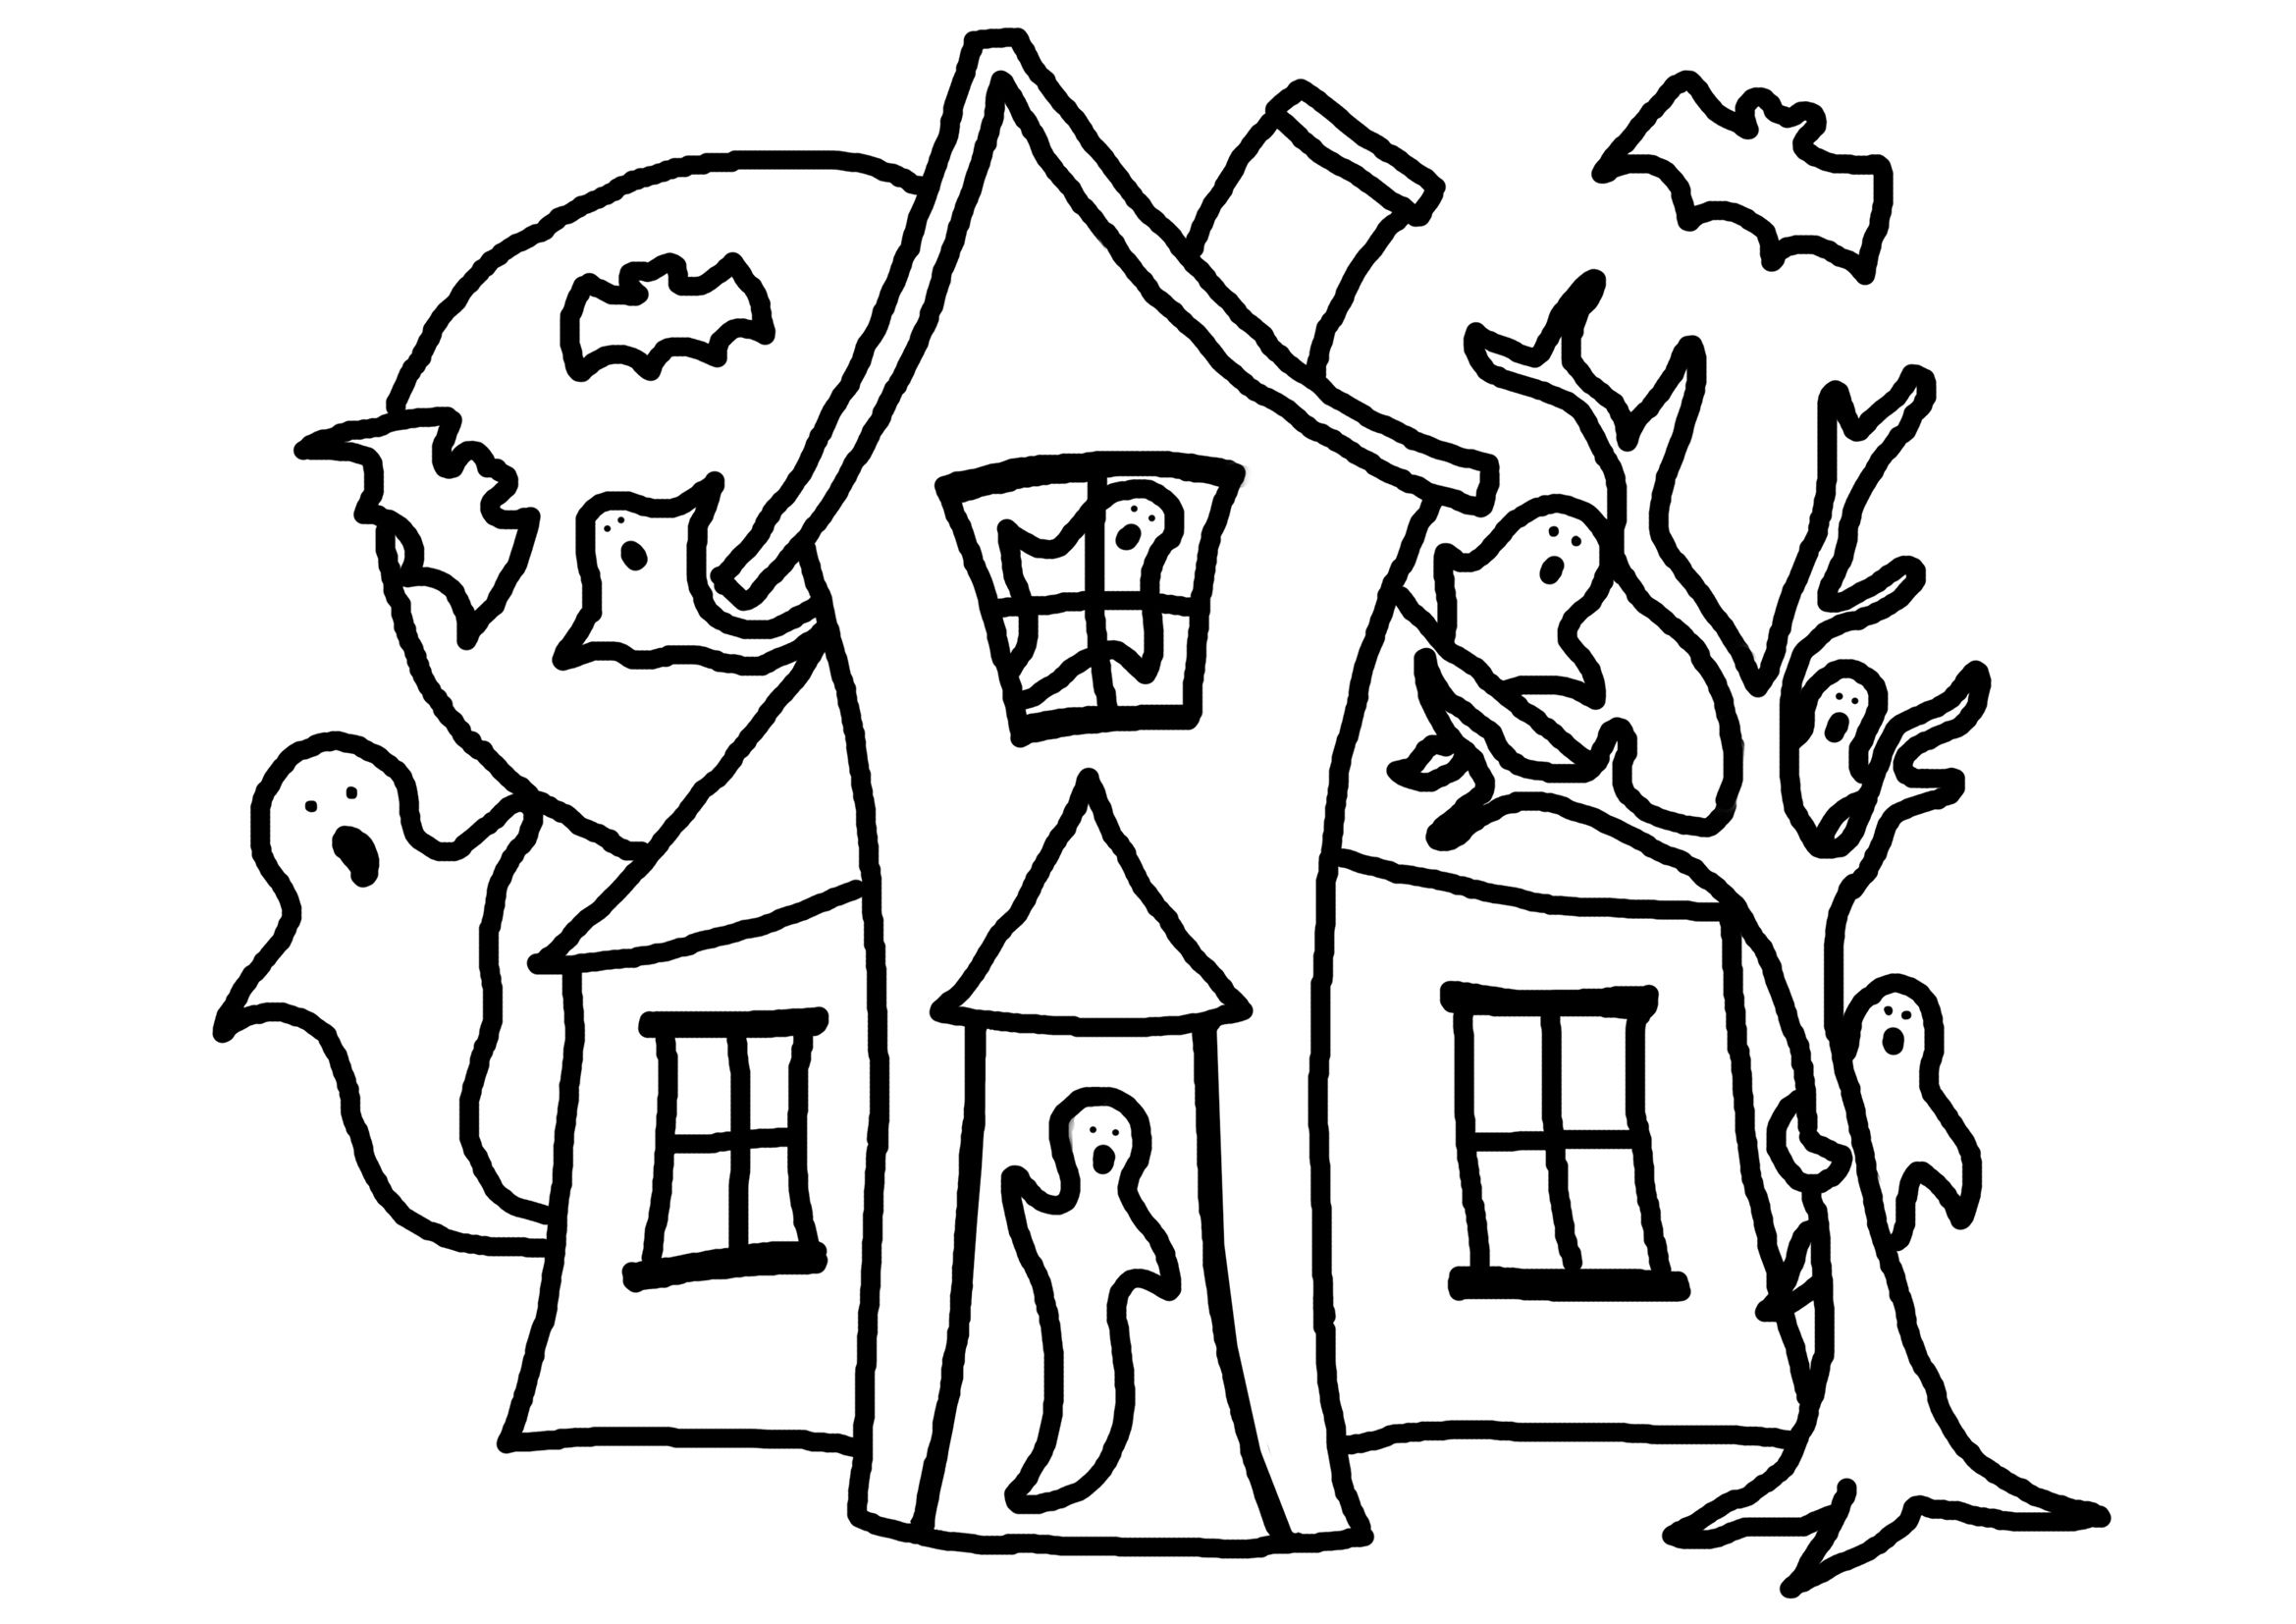 Haunted House Coloring Pages Free Printable Haunted House Coloring Pages For Kids House Colouring Pages Coloring Pages Cute Coloring Pages